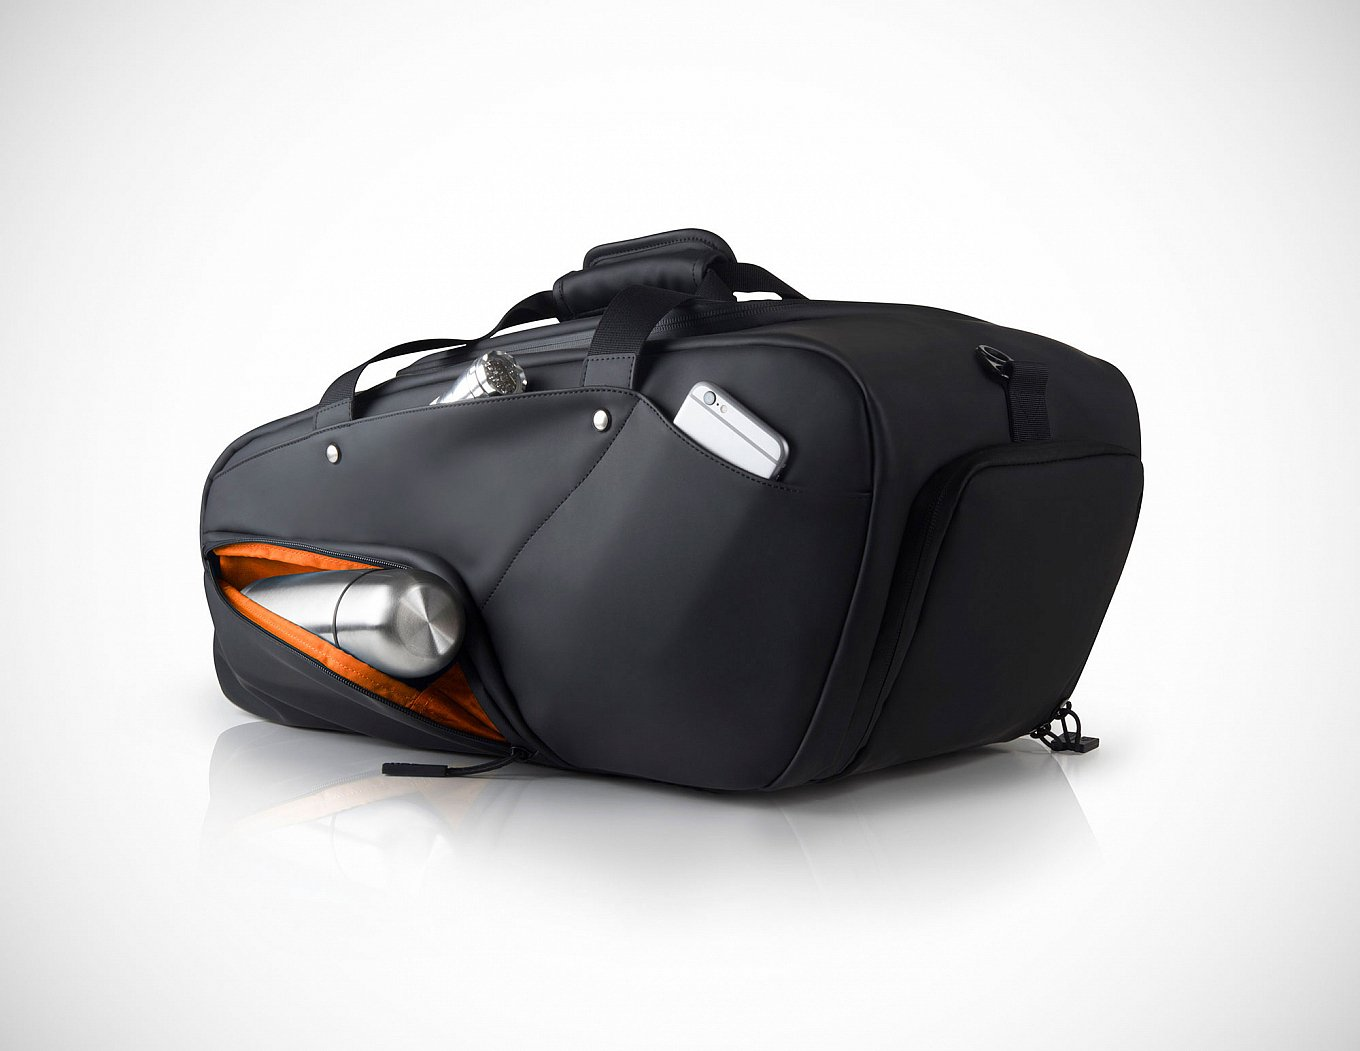 kp-duffle-innovative-gym-duffel-3